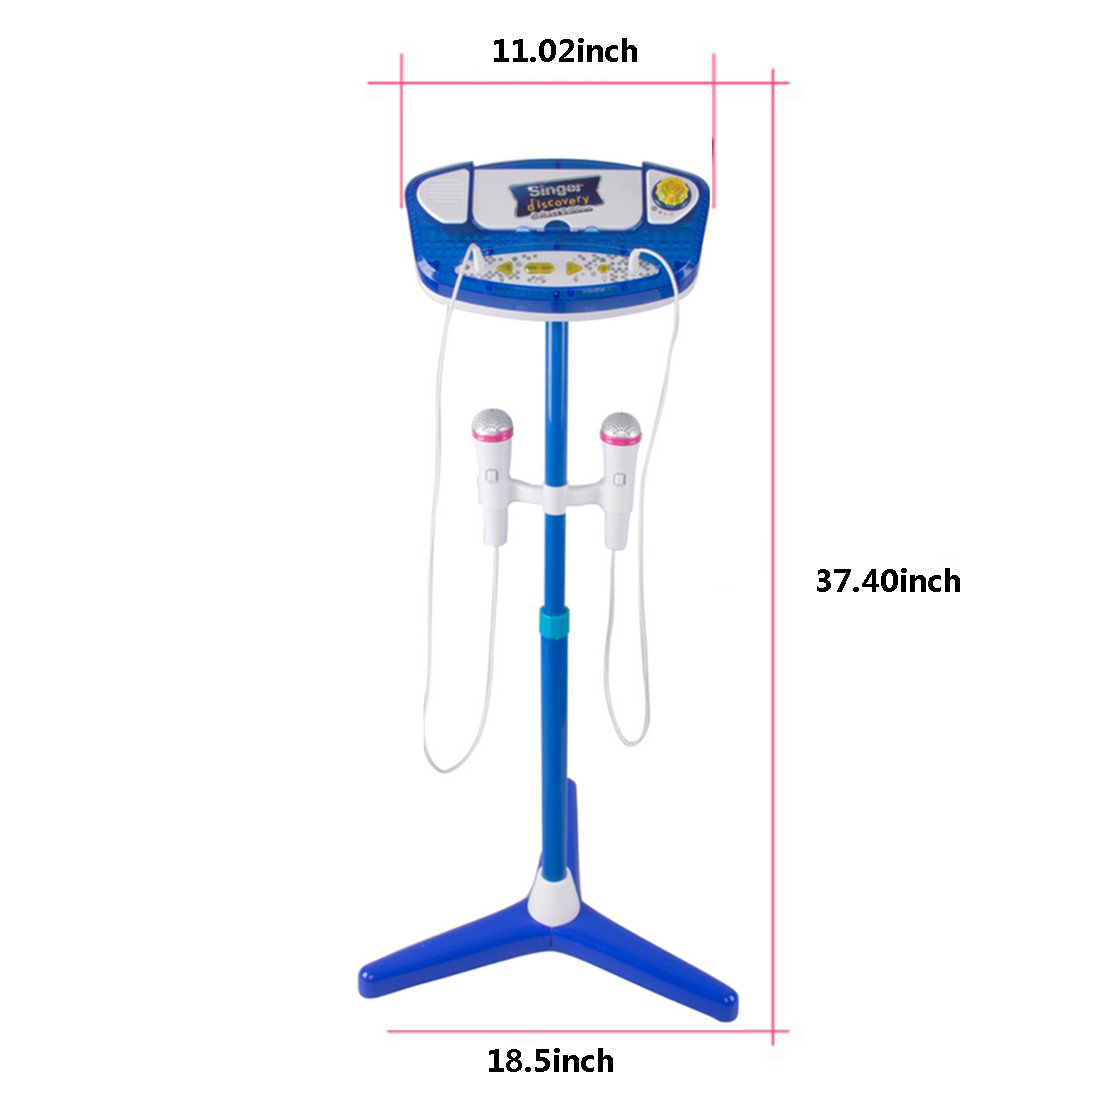 Haoun Kid's Karaoke Machine, Children Karaoke Disco Singing Toy,2 Microphones Adjustable Stand,Connect to Phones MP3 Players,Christmas Birthday Gift for Girl Boy - Blue by Haoun (Image #2)